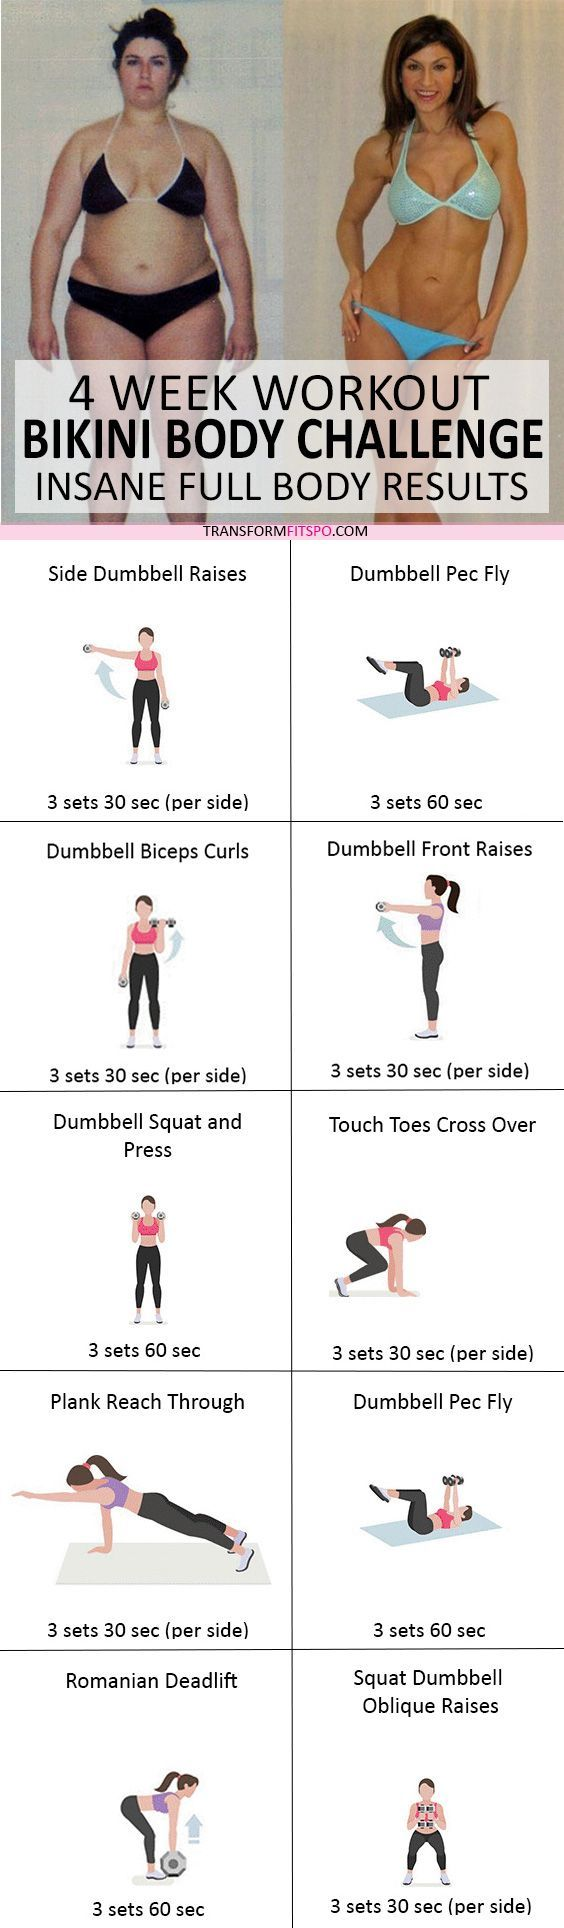 #womensworkout #workout #femalefitness Repin and share if this workout gave you a bikini body! Click the pin for the full workout.